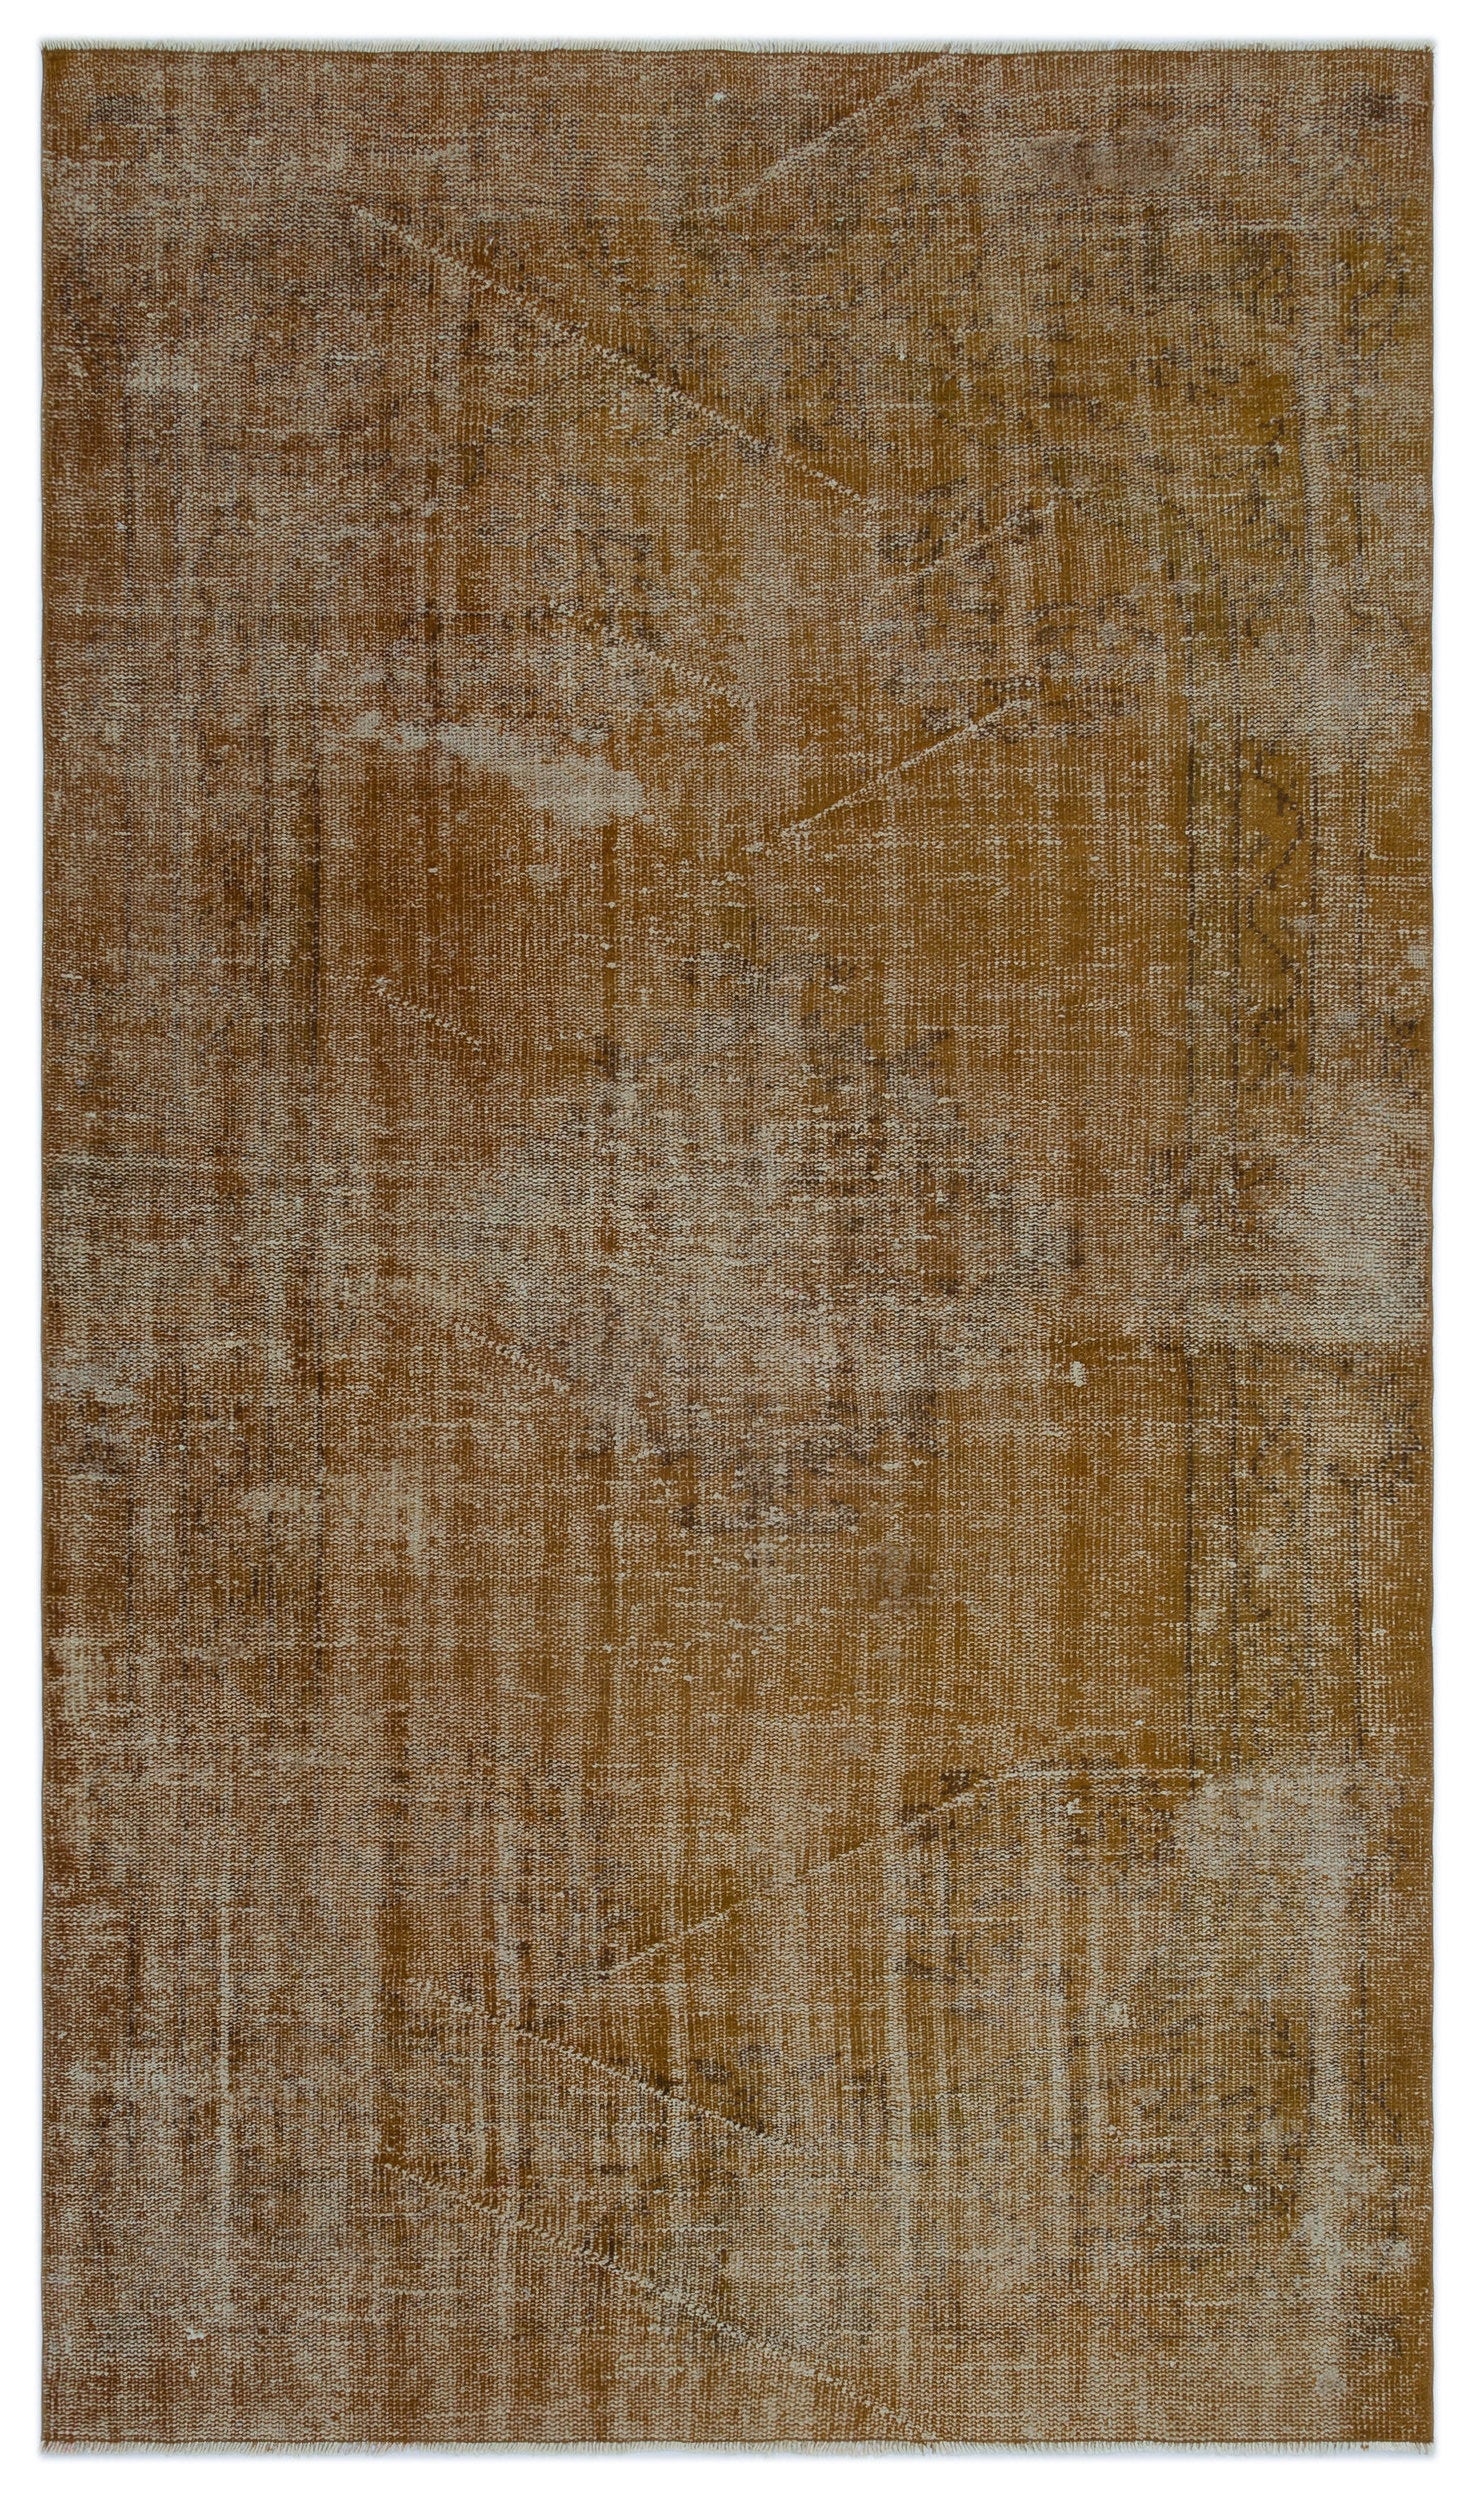 Brown Over Dyed Vintage Rug 4'10'' x 8'2'' ft 148 x 250 cm